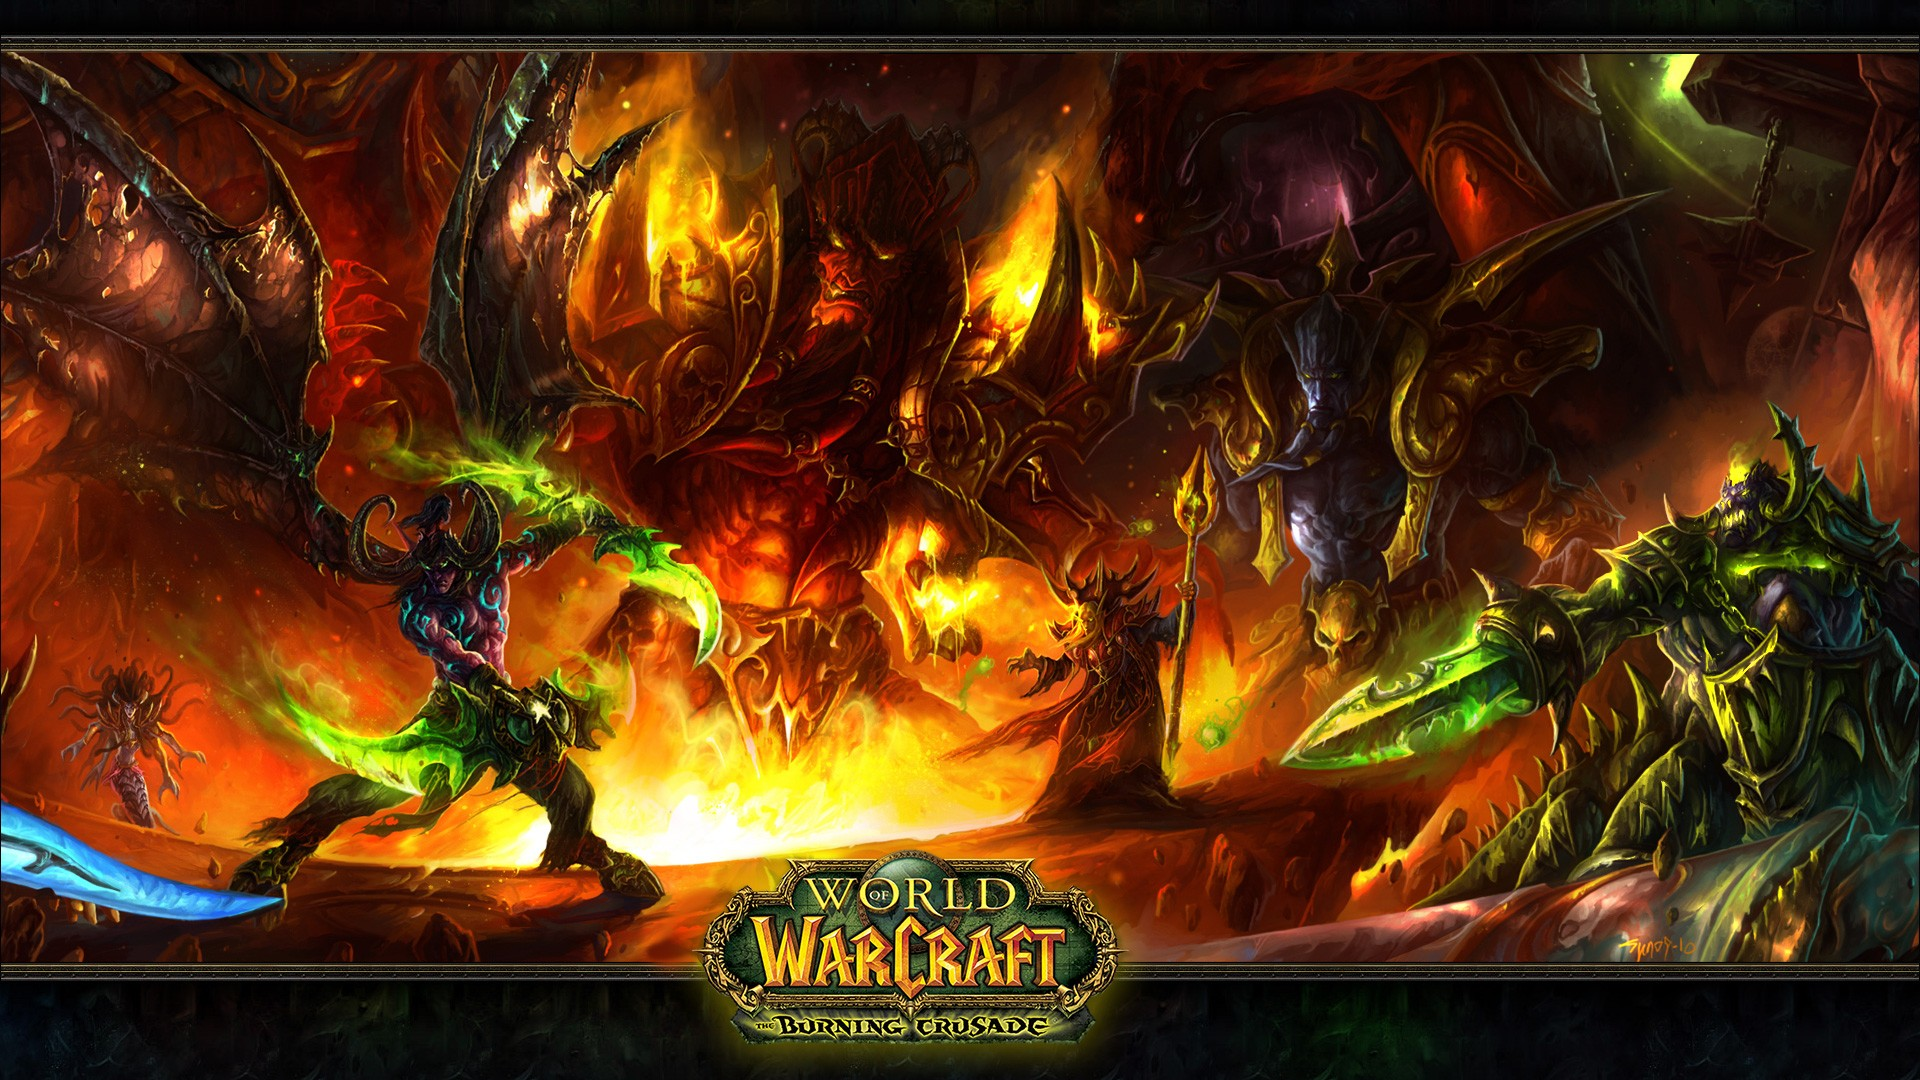 Warcraft Wallpaper Mobile